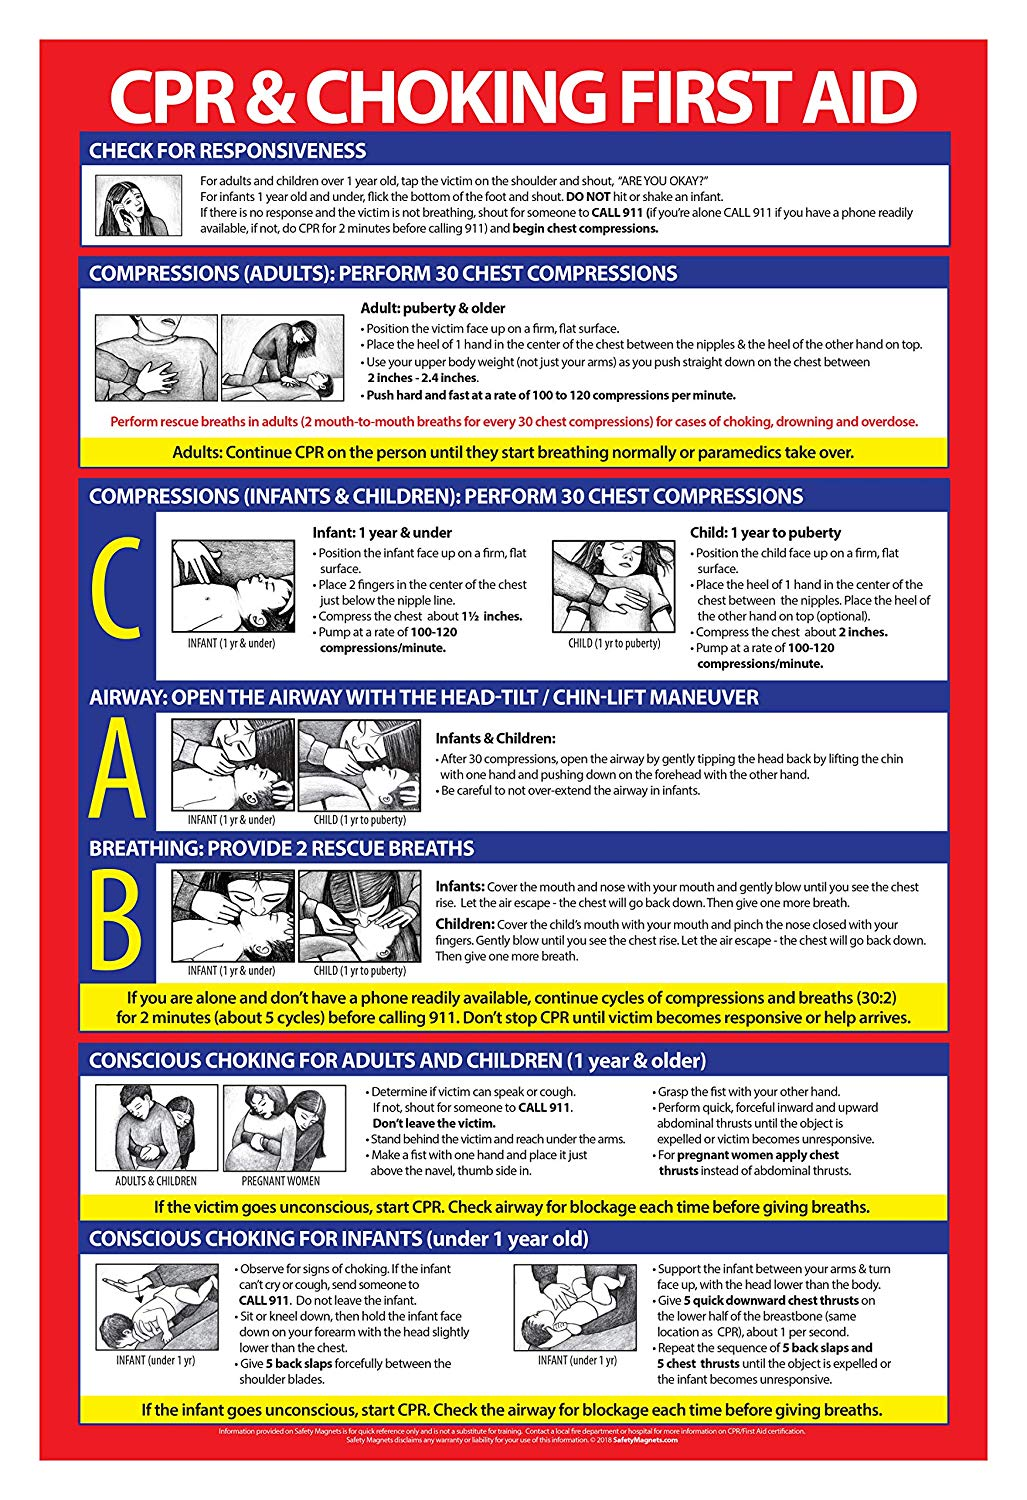 CPR & Choking First Aid Posters (10 Pack) - 12x18 - Laminated - ZoCo Products